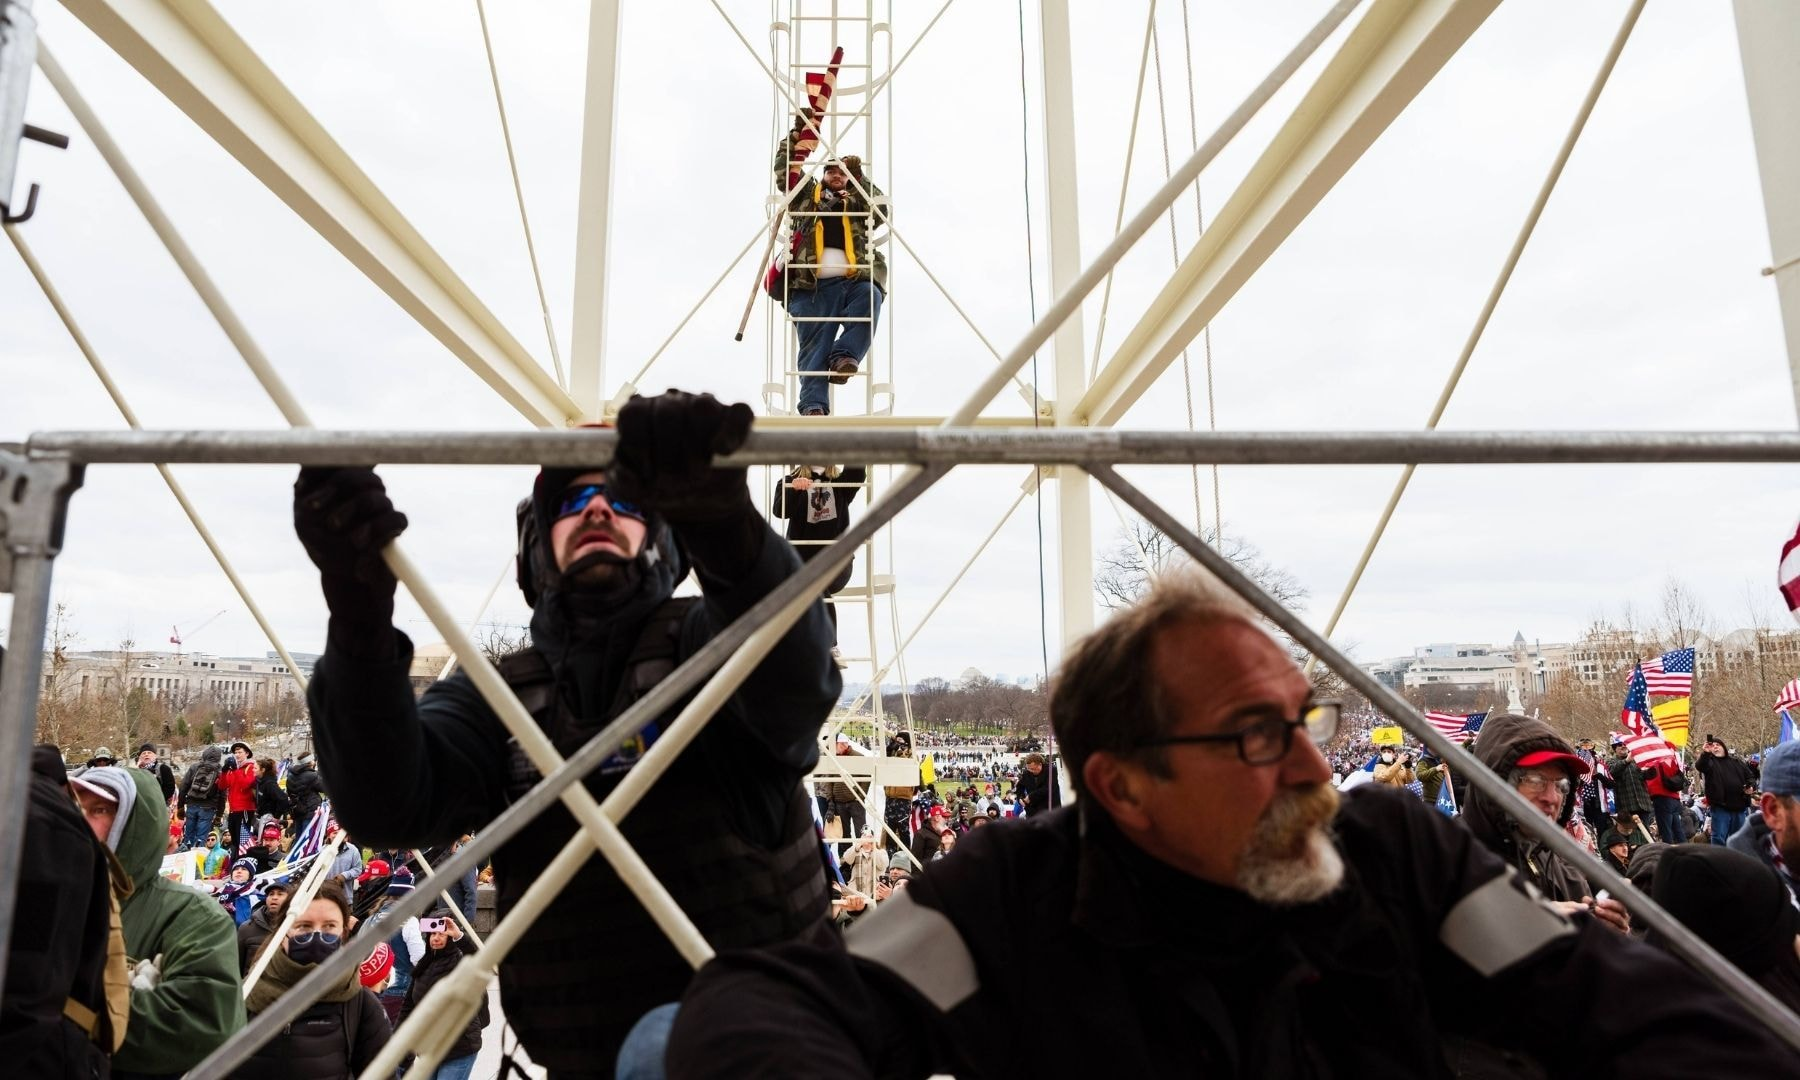 Protesters climb the scaffolding on the inauguration platform after breaking through barriers onto the grounds of the Capitol Building. — AFP